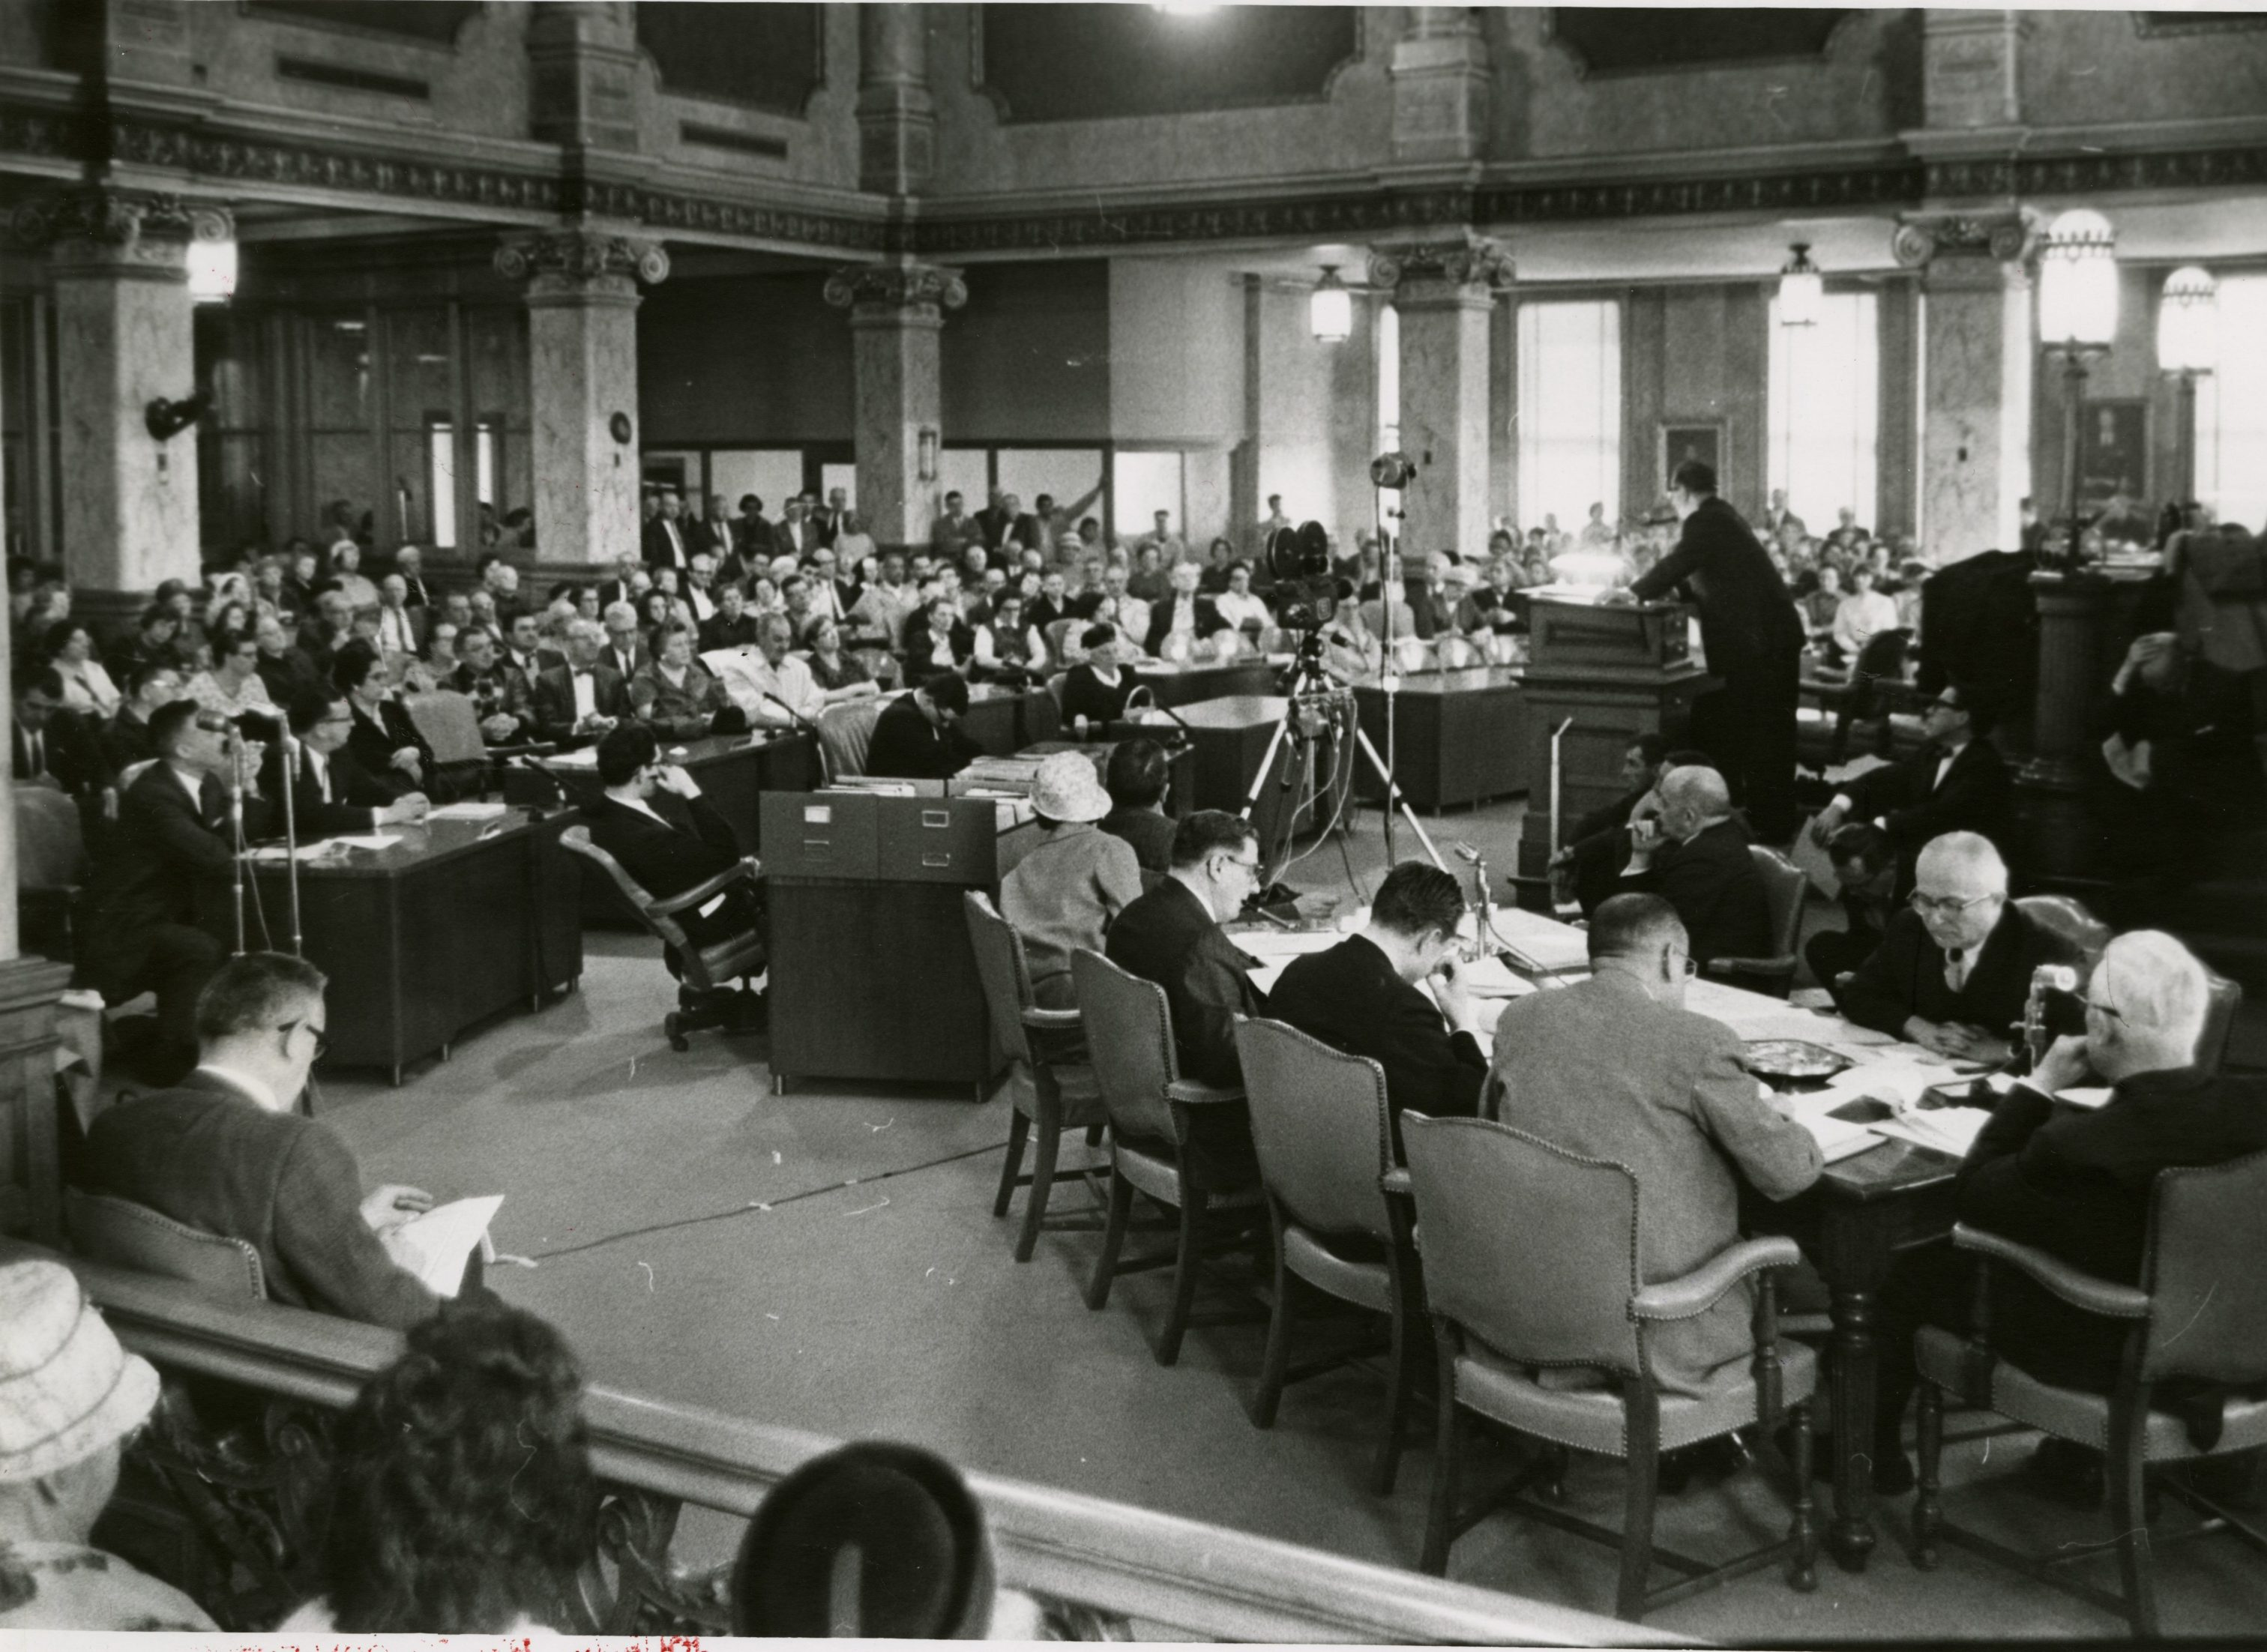 A man speaks at a podium to a crowd gathered for a hearing in regards to the Midtown public housing plant in the Milwaukee Common Council chambers in 1967.